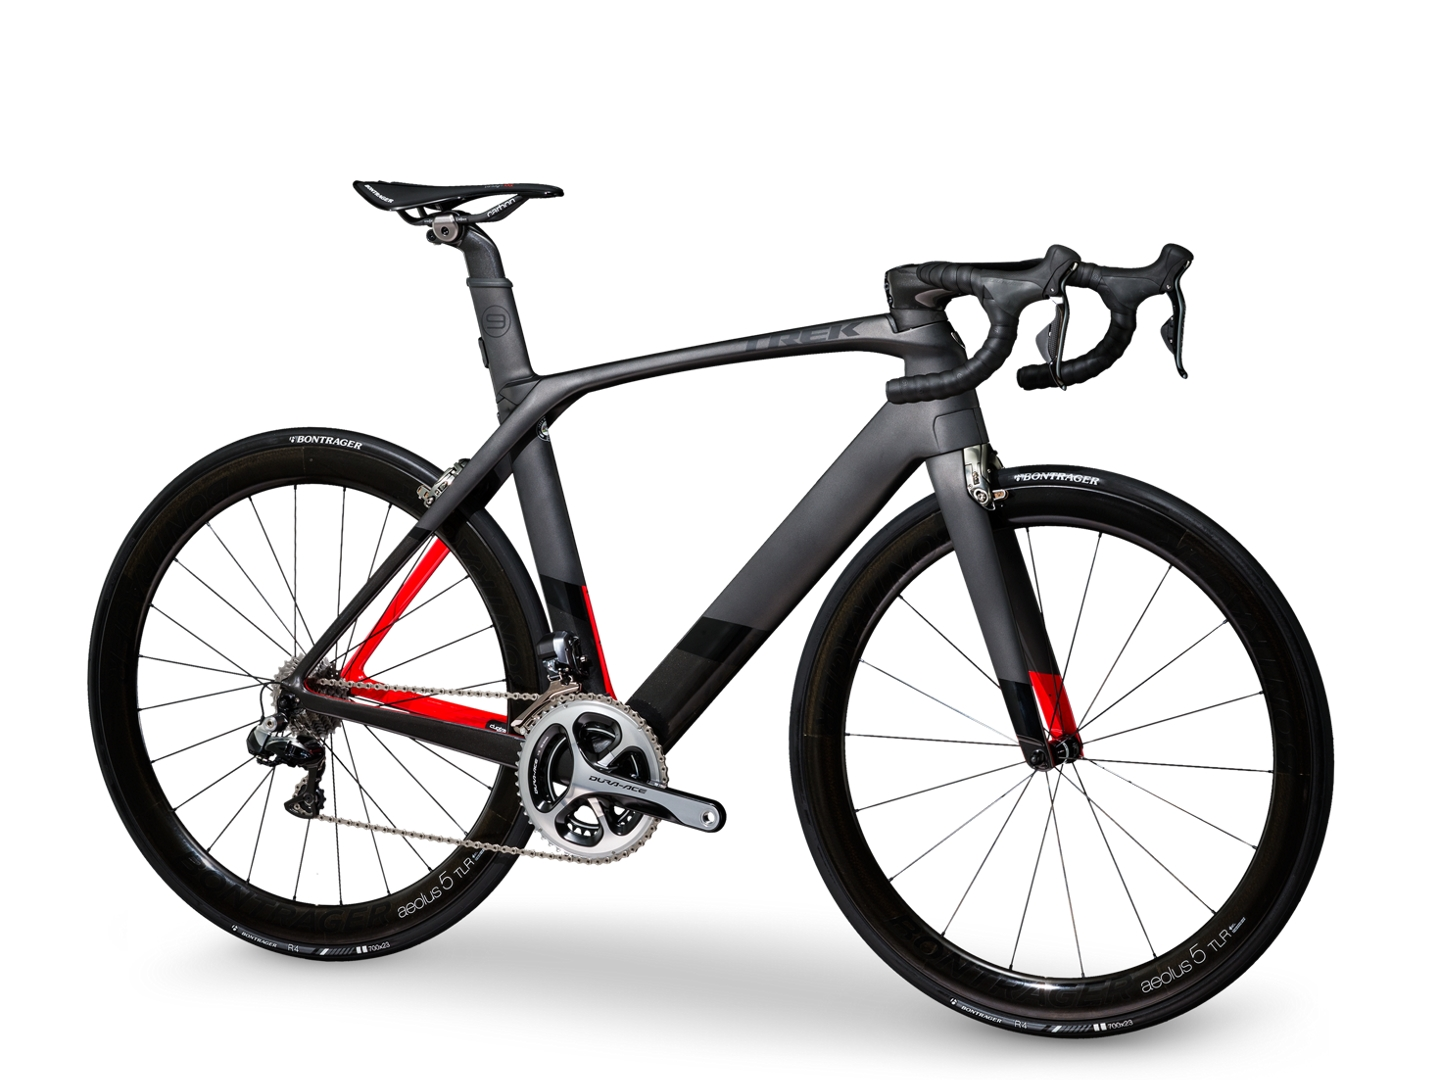 New Trek Madone - Bear Witness is Live!: Triathlon Forum ...